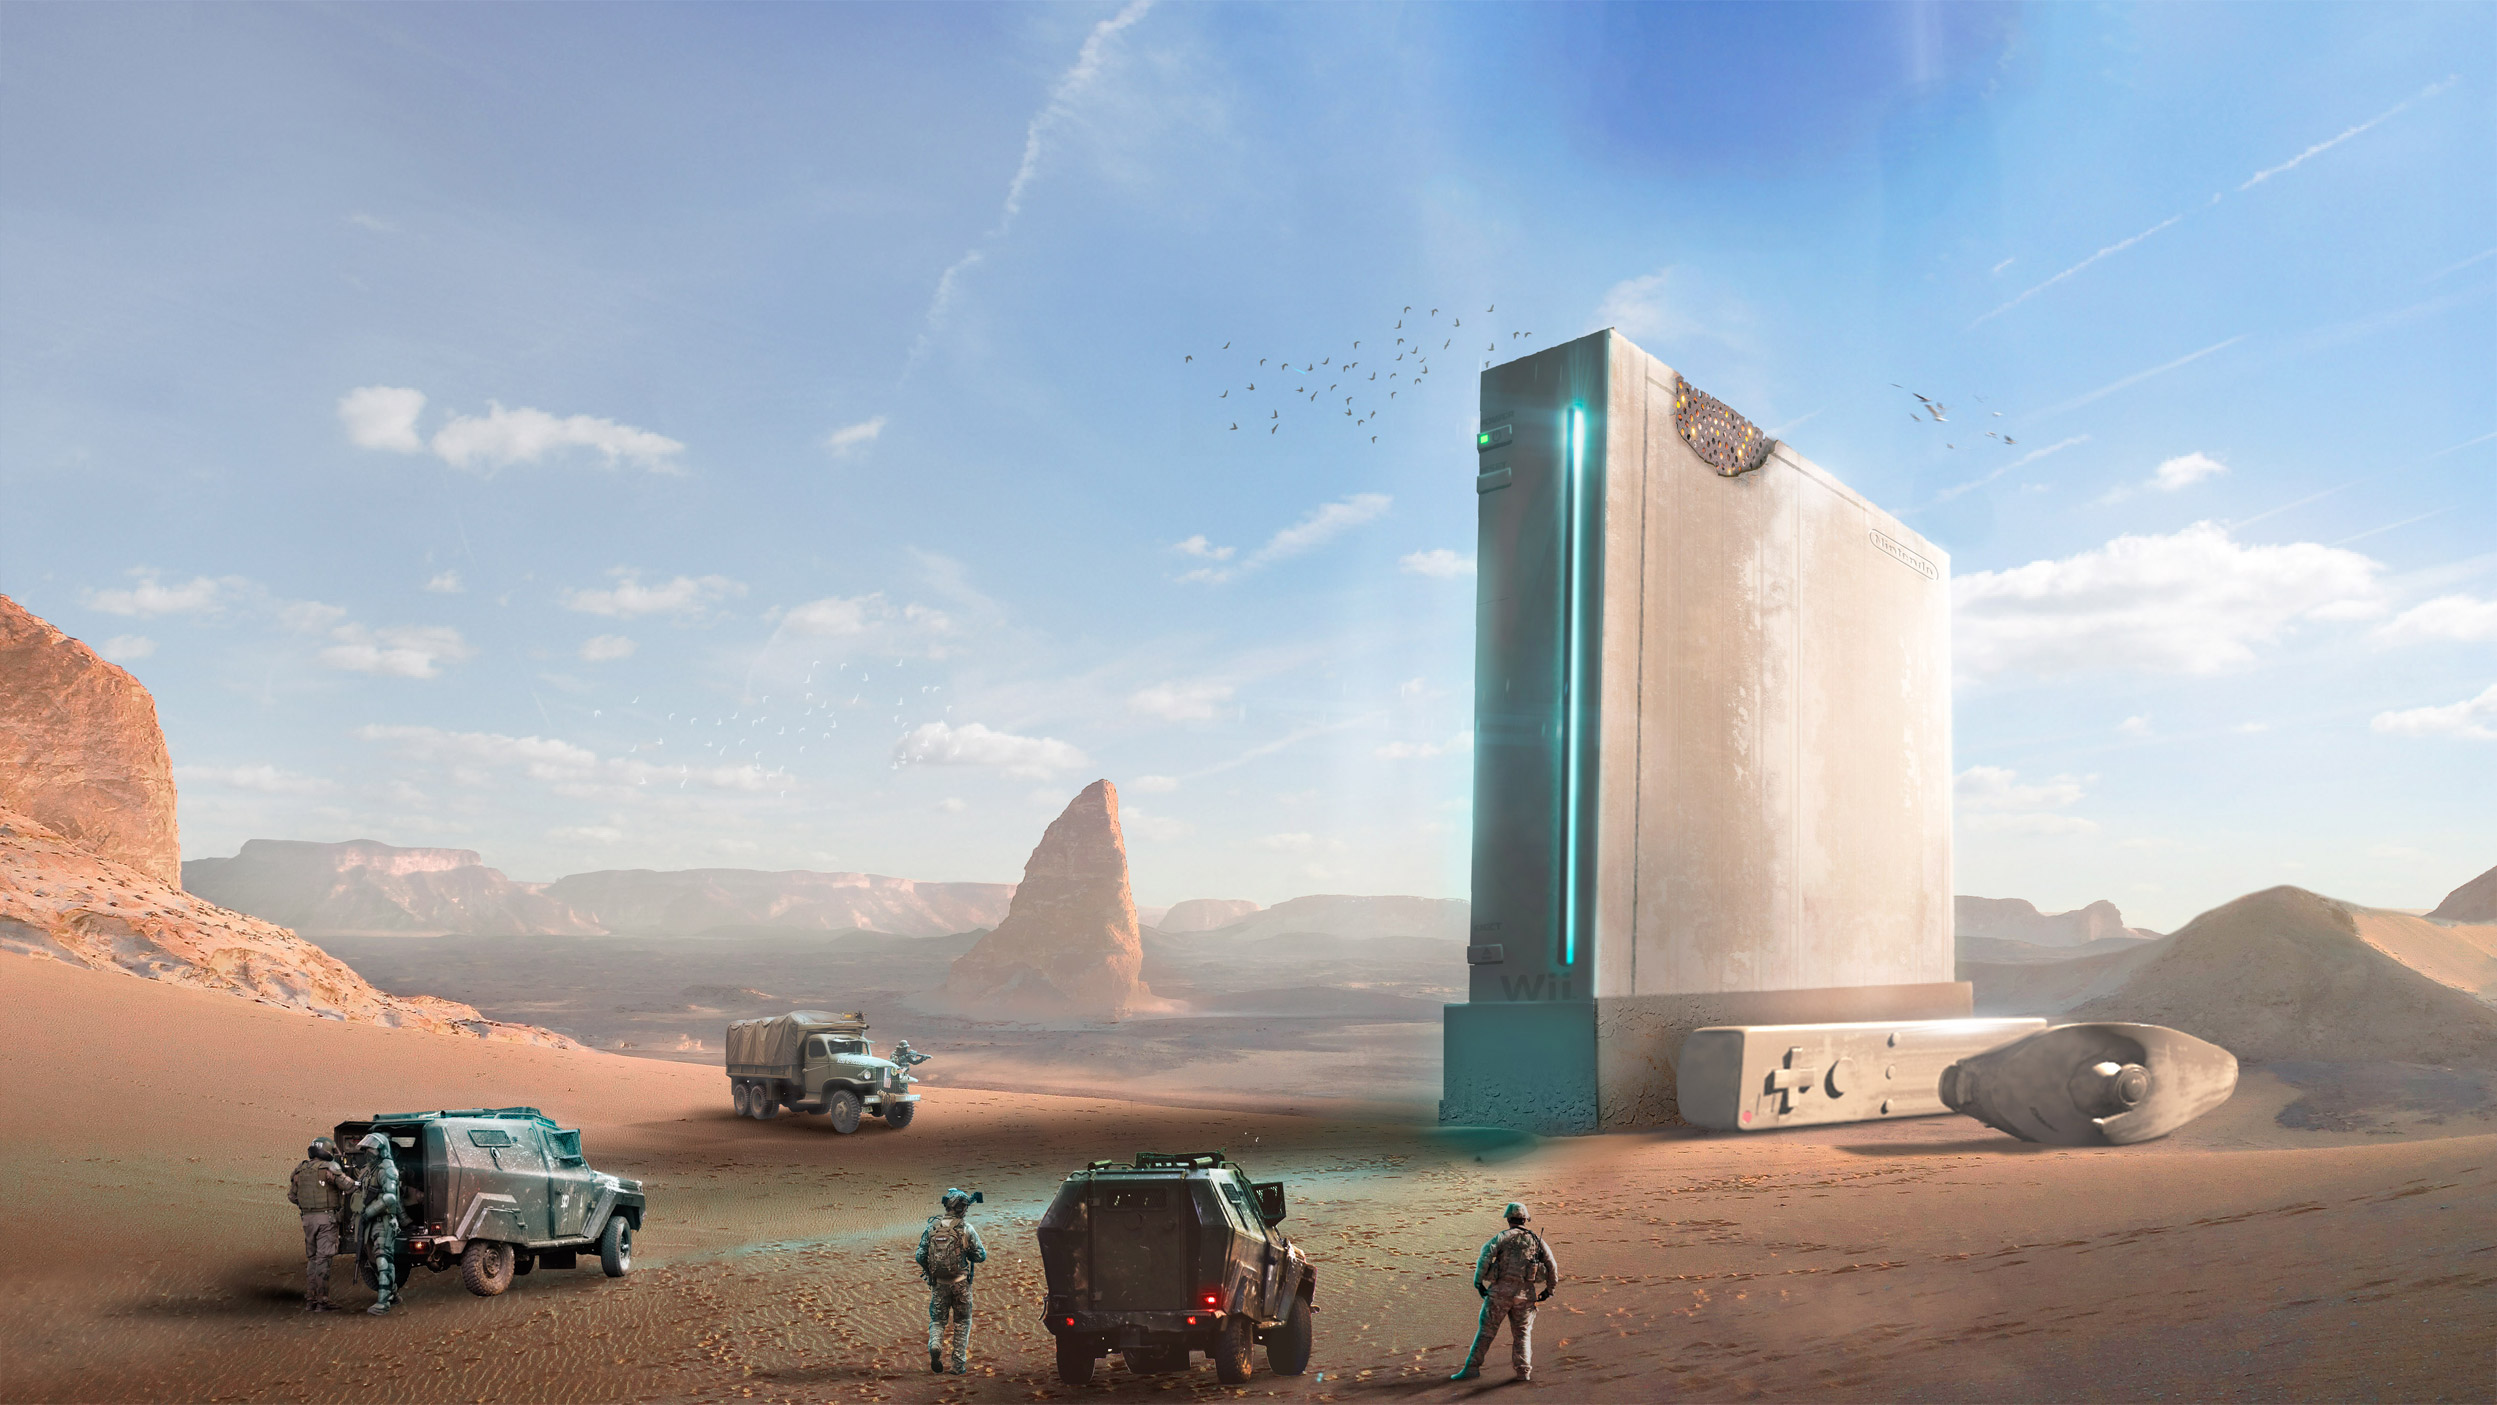 Matte painting Wii